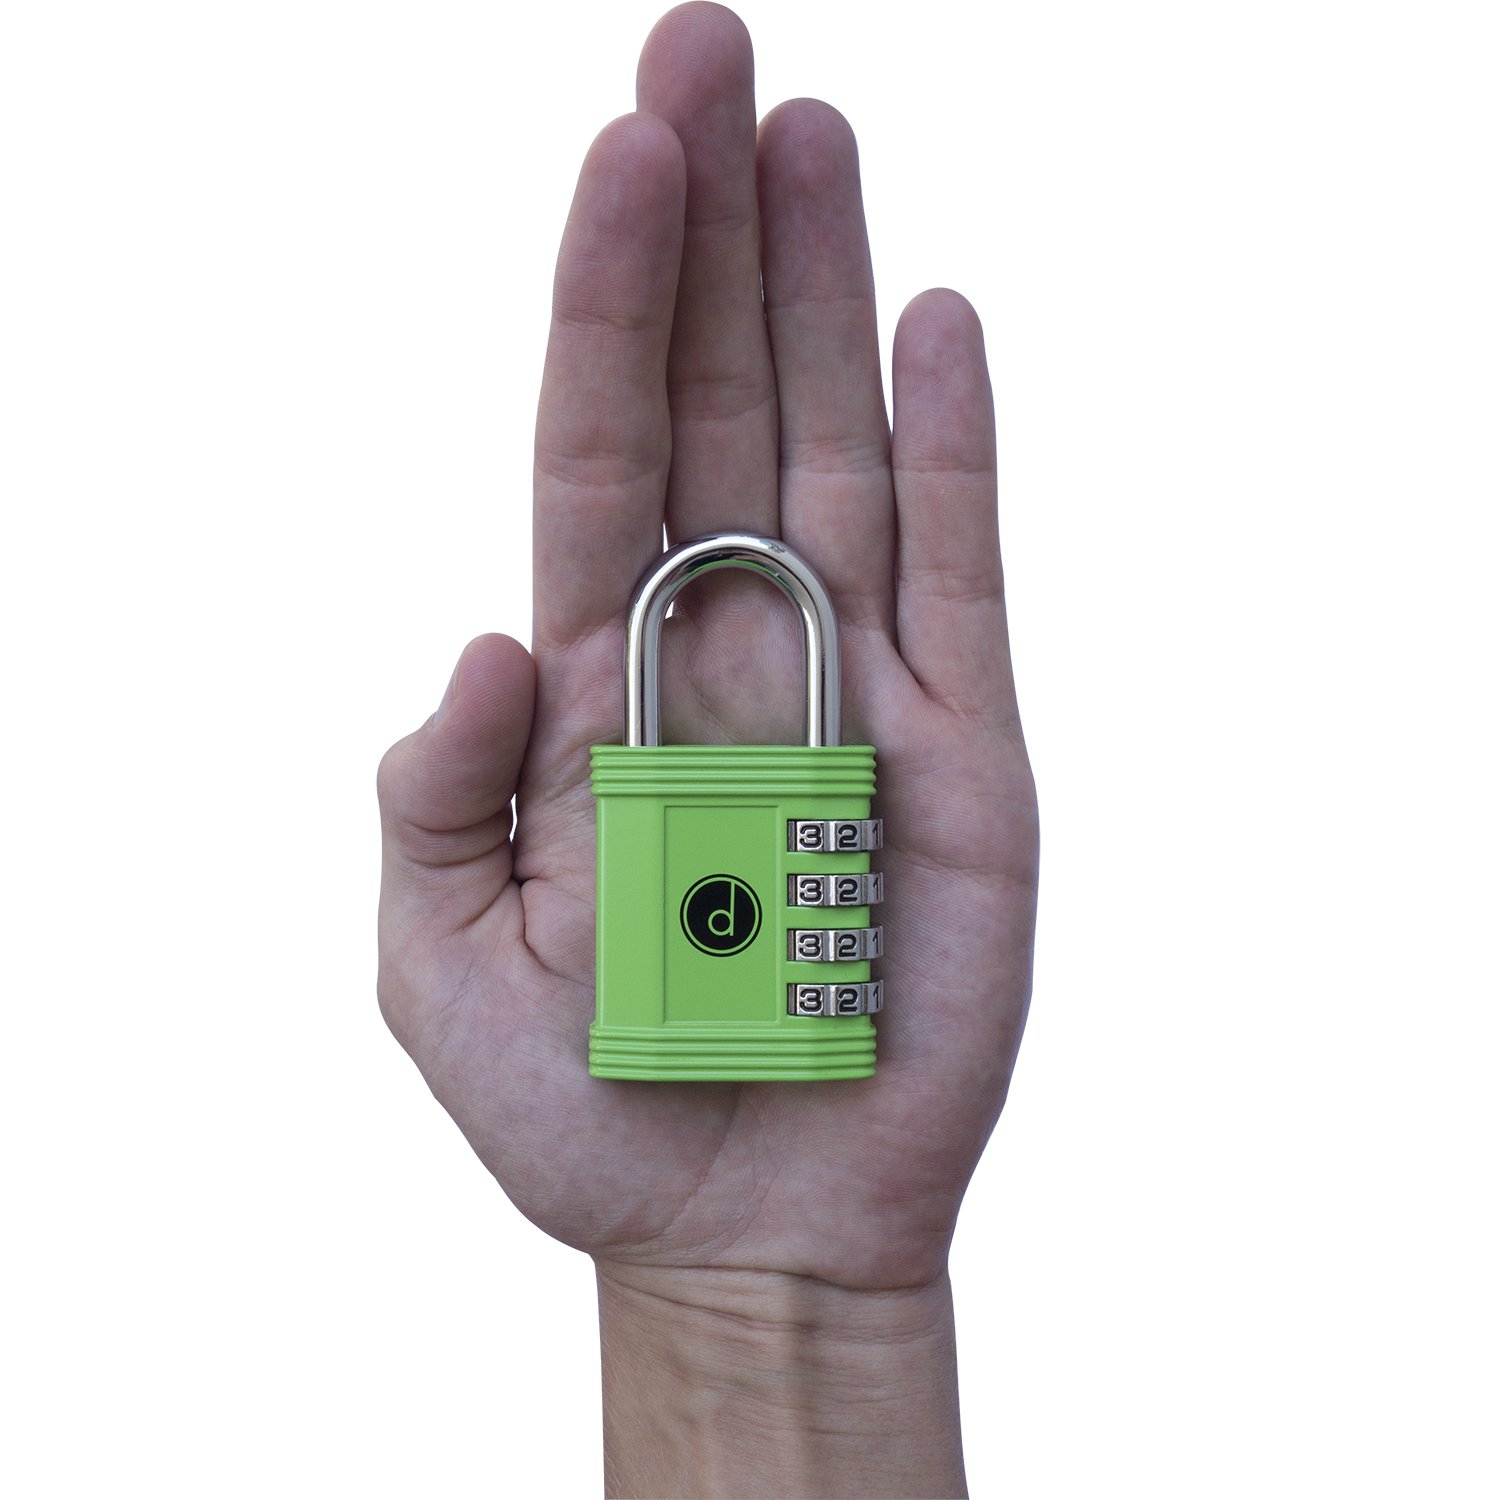 Padlock - 4 Digit Combination Lock for Gym, Sports, School & Employee Locker, Outdoor, Fence, Hasp and Storage - All Weather Metal & Steel - Easy to Set Your Own Keyless Resettable Combo - Green by desired tools (Image #2)